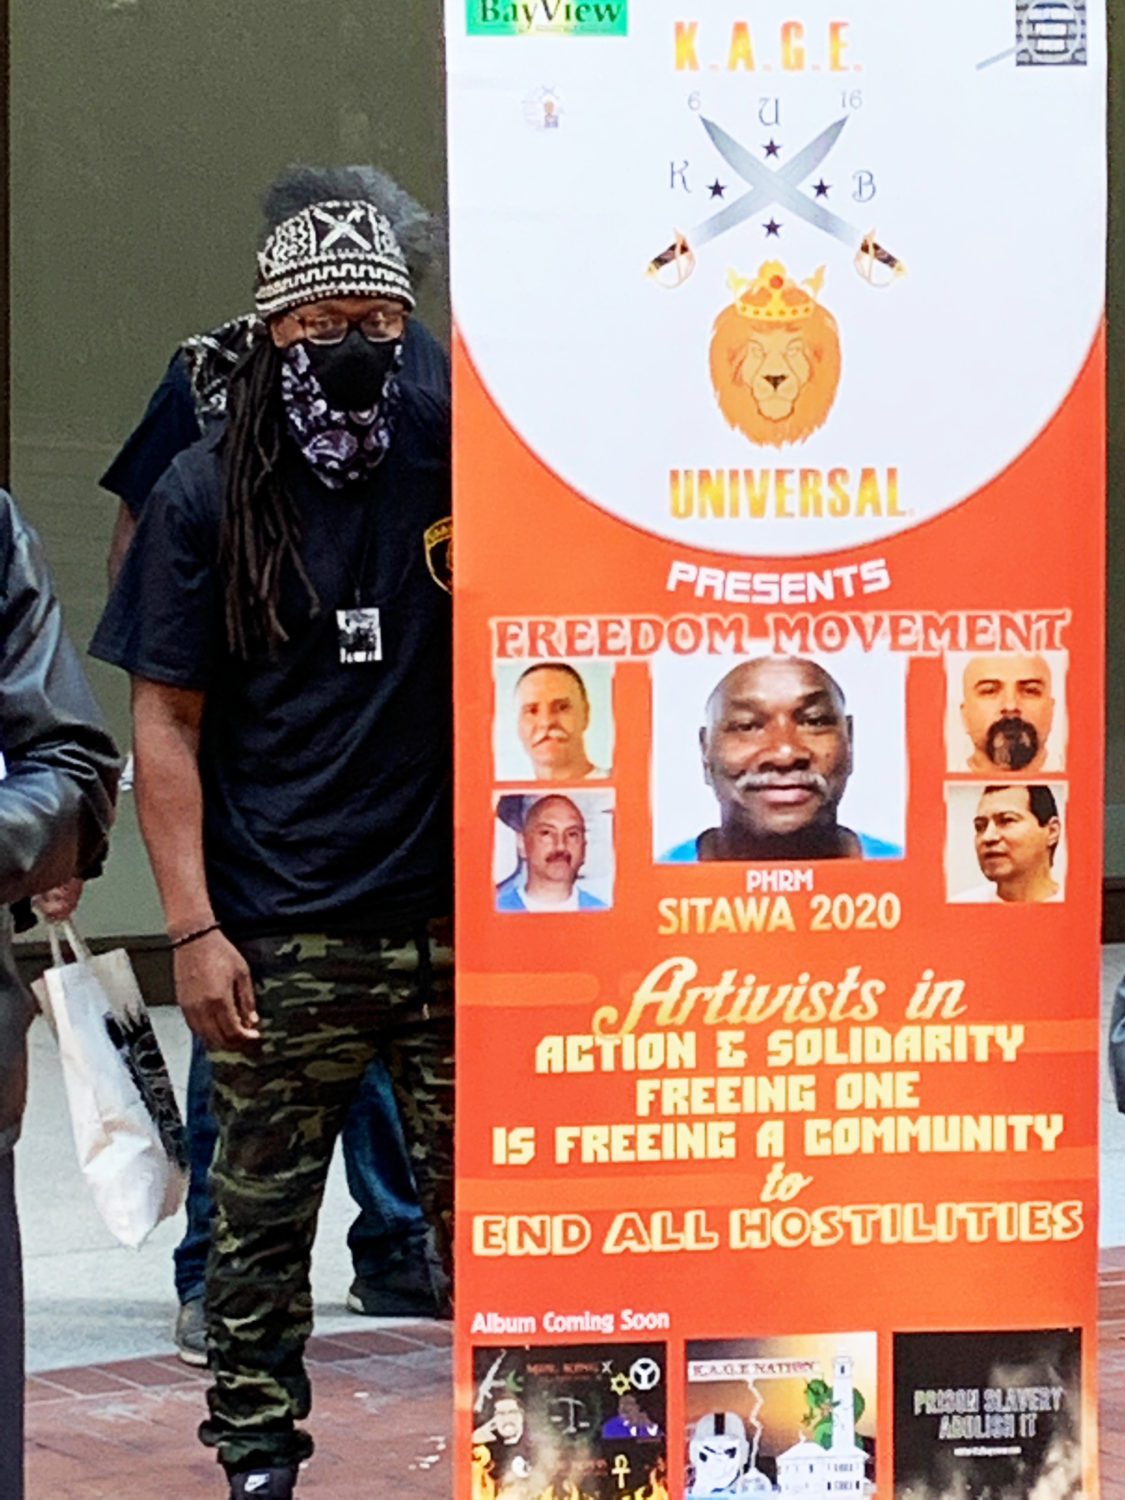 Minister-King-KAGE-Universal-at-Mumia-KQED-protest-042021-by-Malik, Juneteenth 2021! The struggle for freedom continues, Local News & Views